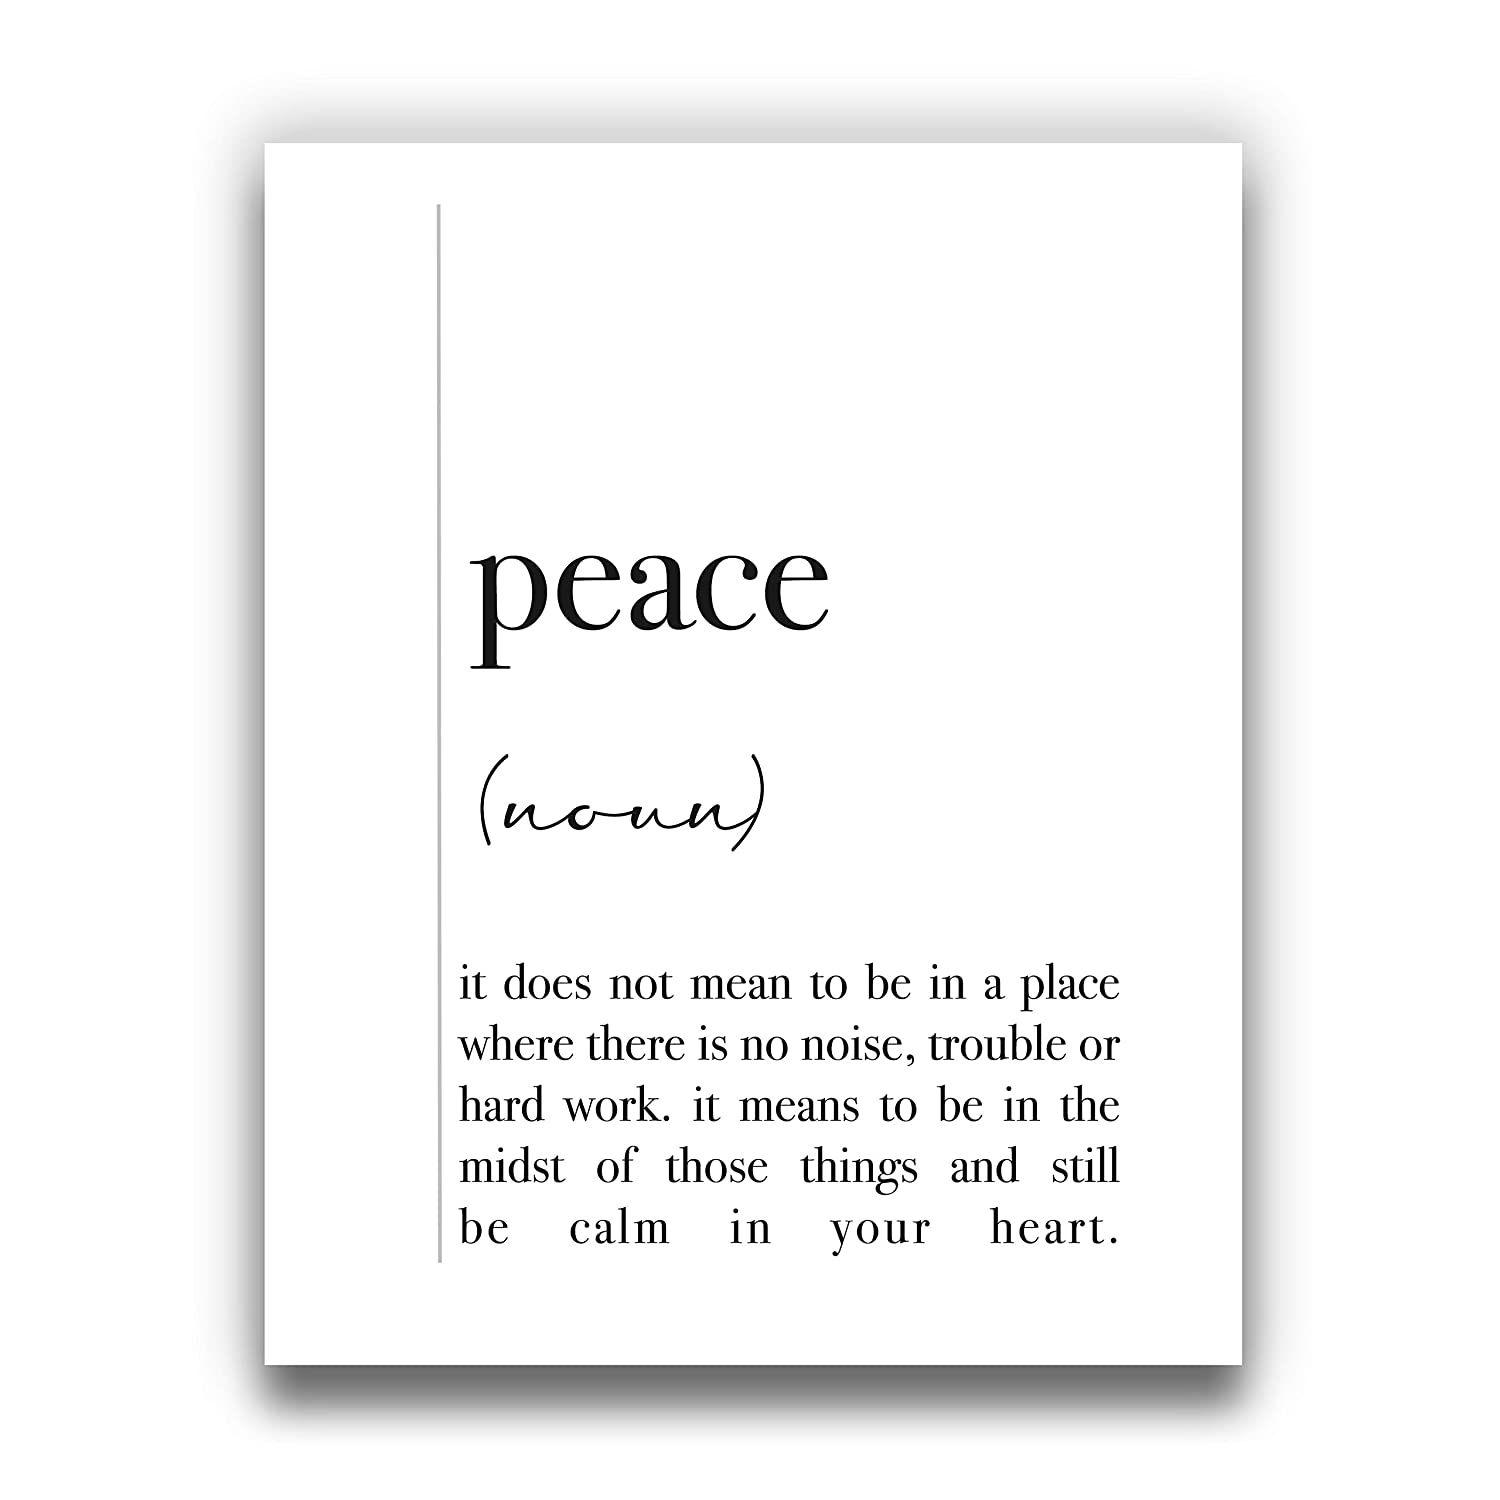 Peace Definition Wall Art | Black and White Positive Word Wall Decor - 8x10 UNFRAMED Modern, Minimalist, Typography Art Print